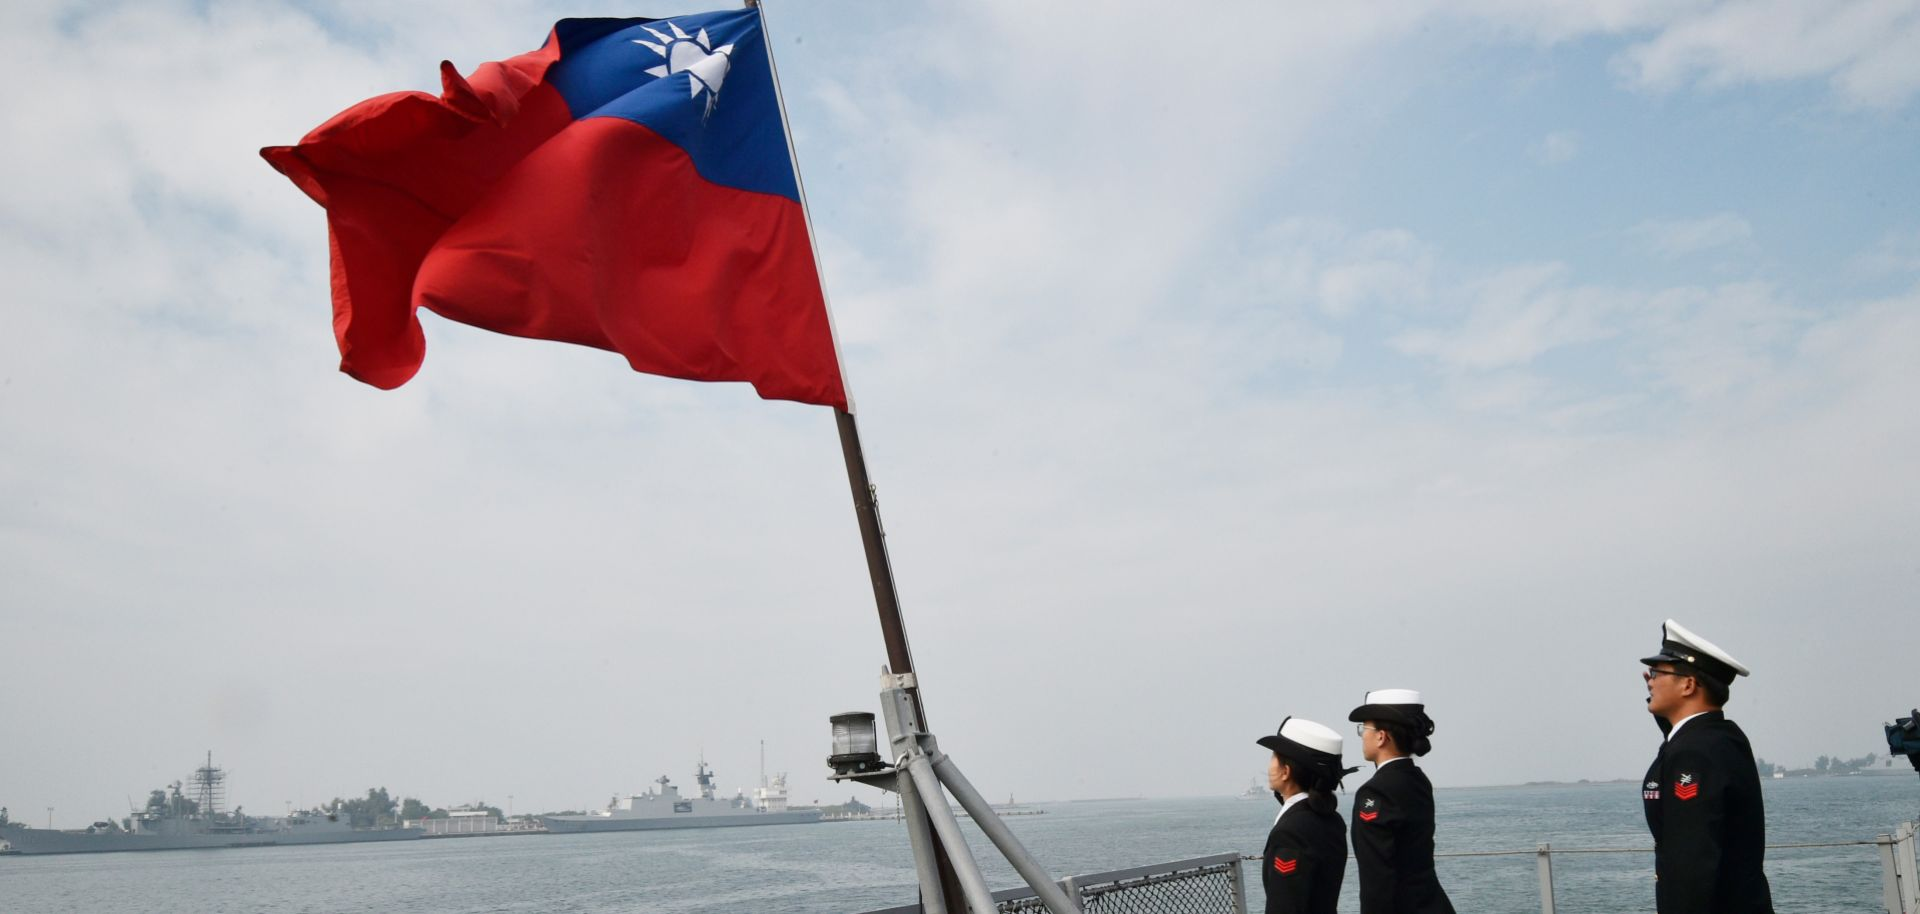 With one phone call from Taiwan, U.S. President Donald Trump kick-started a more intense U.S.-Chinese rivalry.